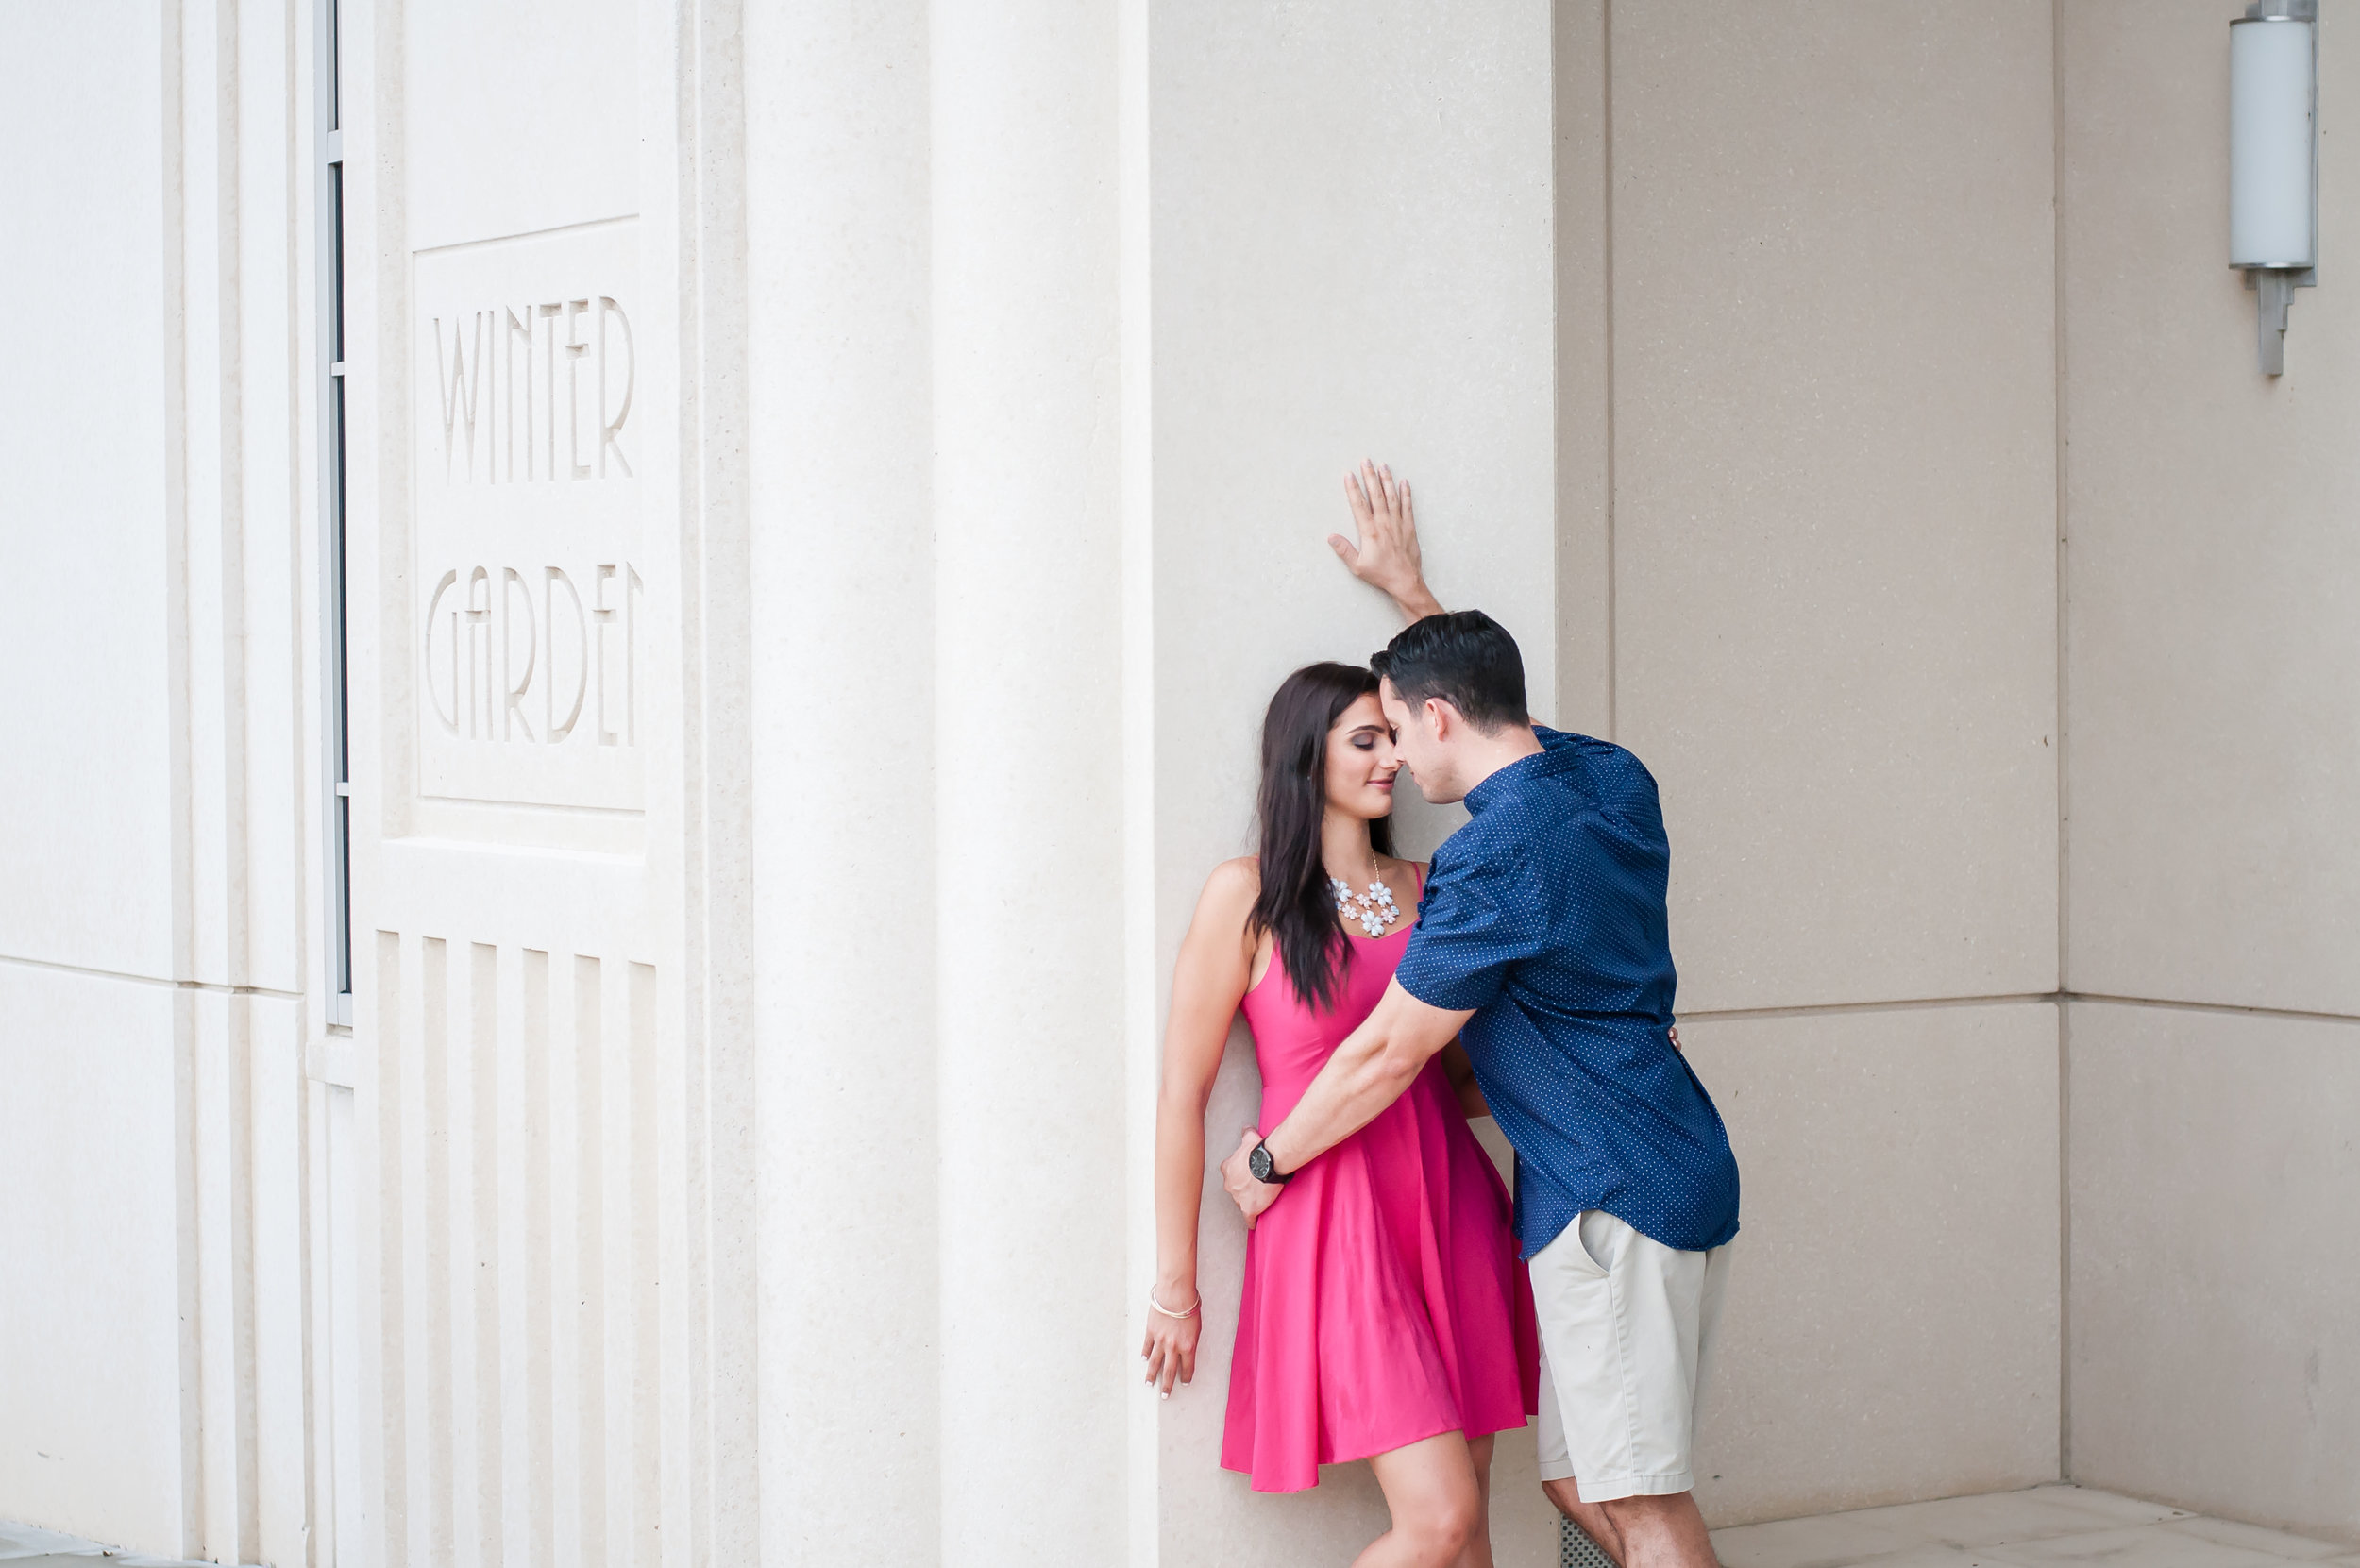 downtown-winter-garden-engagement-session-4.jpg